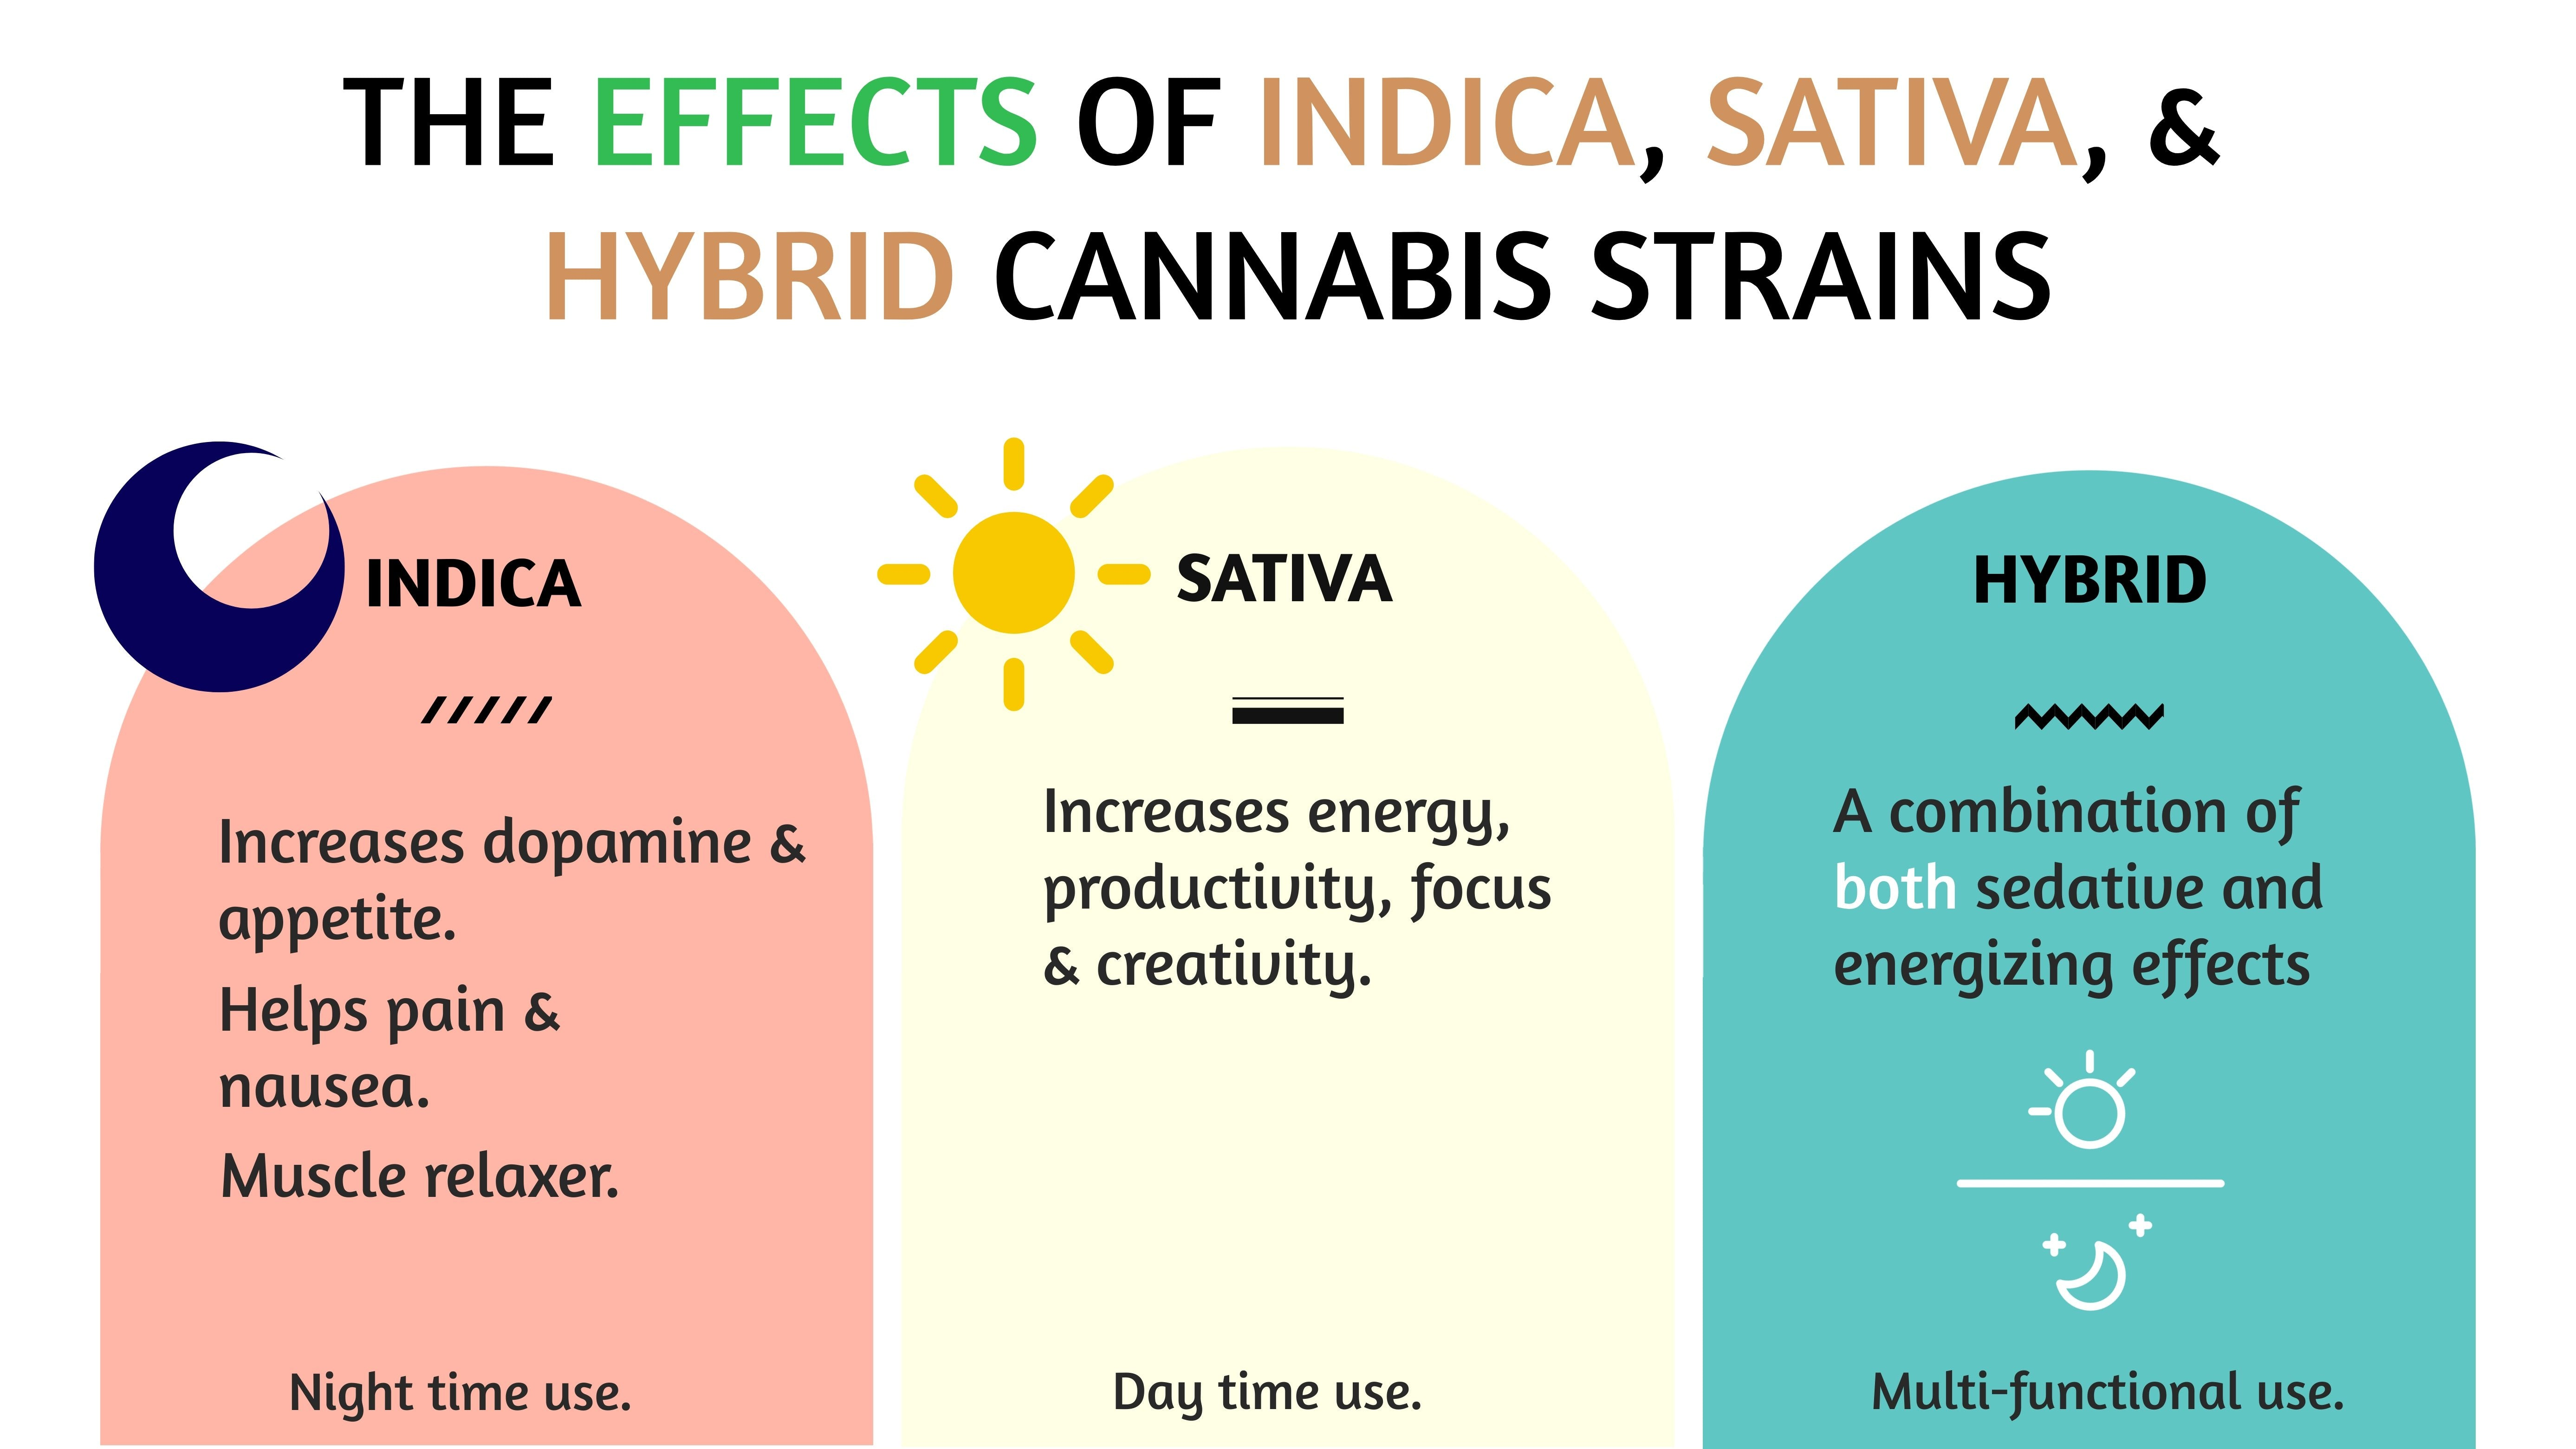 the effects of indica sativa hybrid cannabis strains